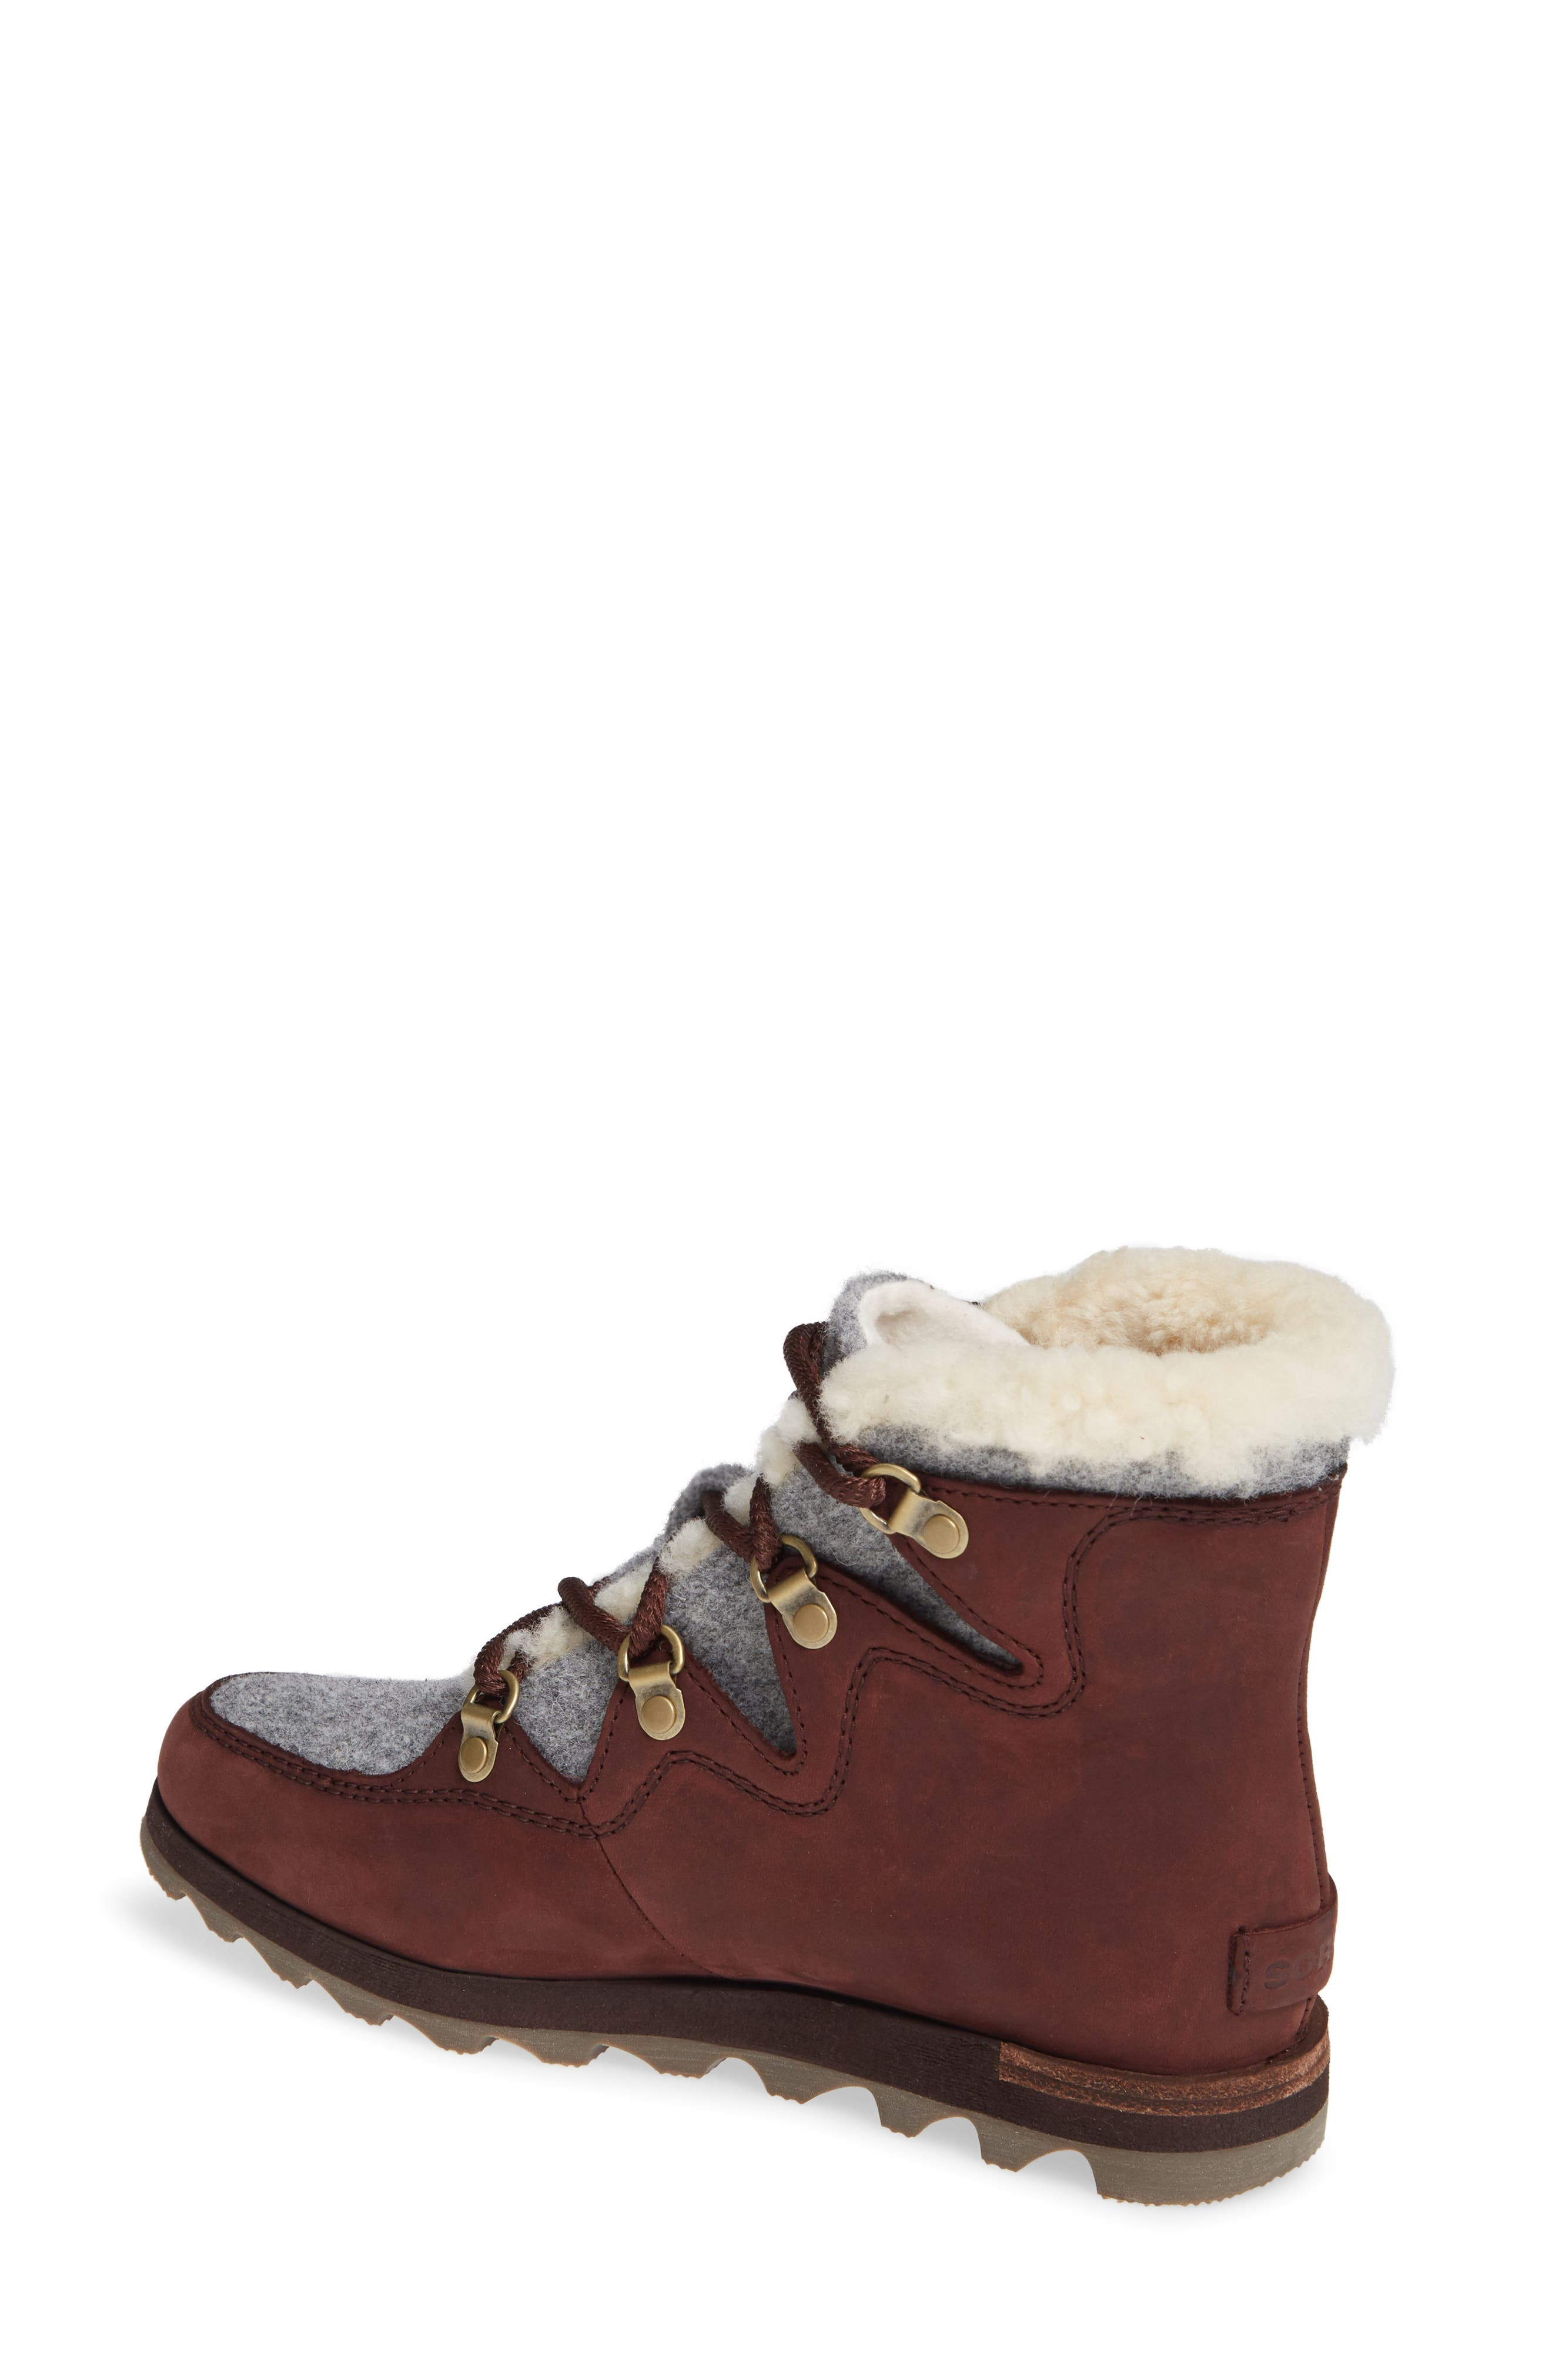 Sneakchic Alpine Holiday Waterproof Bootie,                             Alternate thumbnail 2, color,                             CATTAIL/ GUM